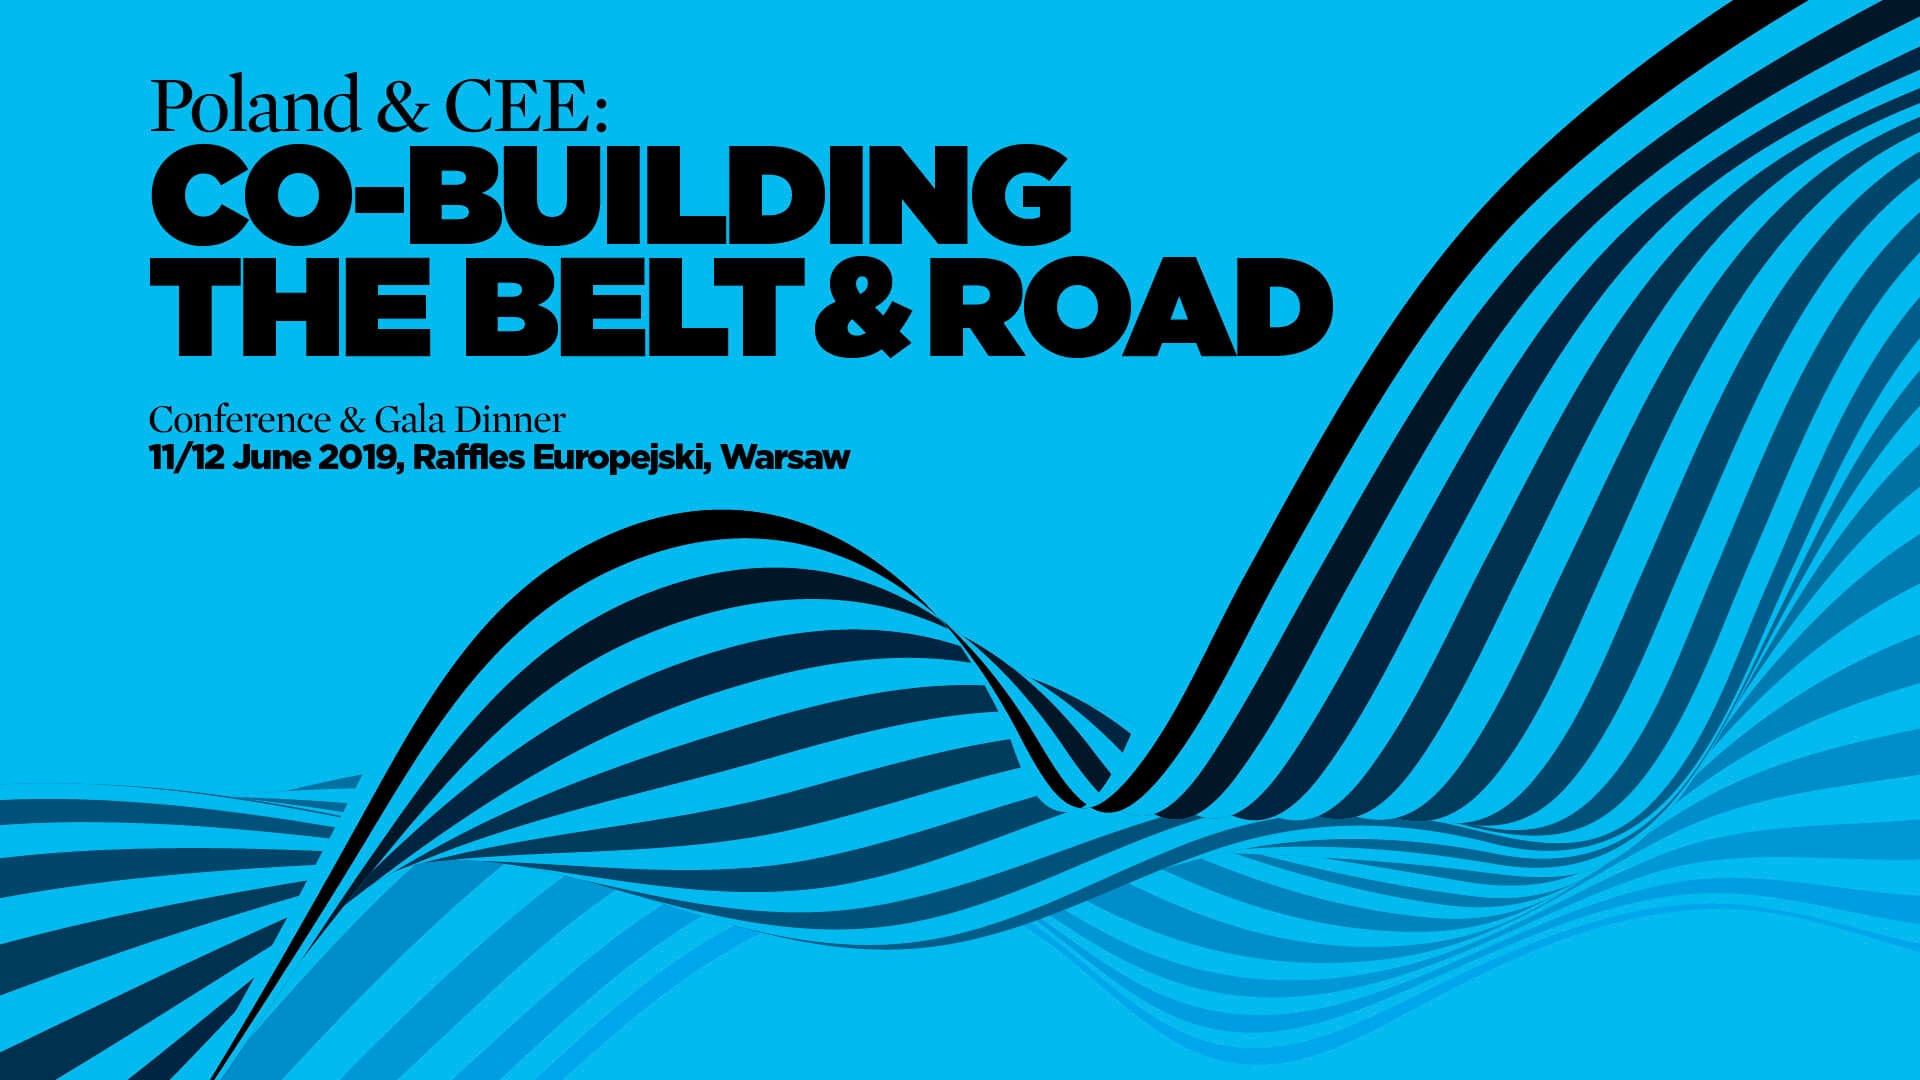 POLAND & CEE: CO-BUILDING THE BELT & ROAD